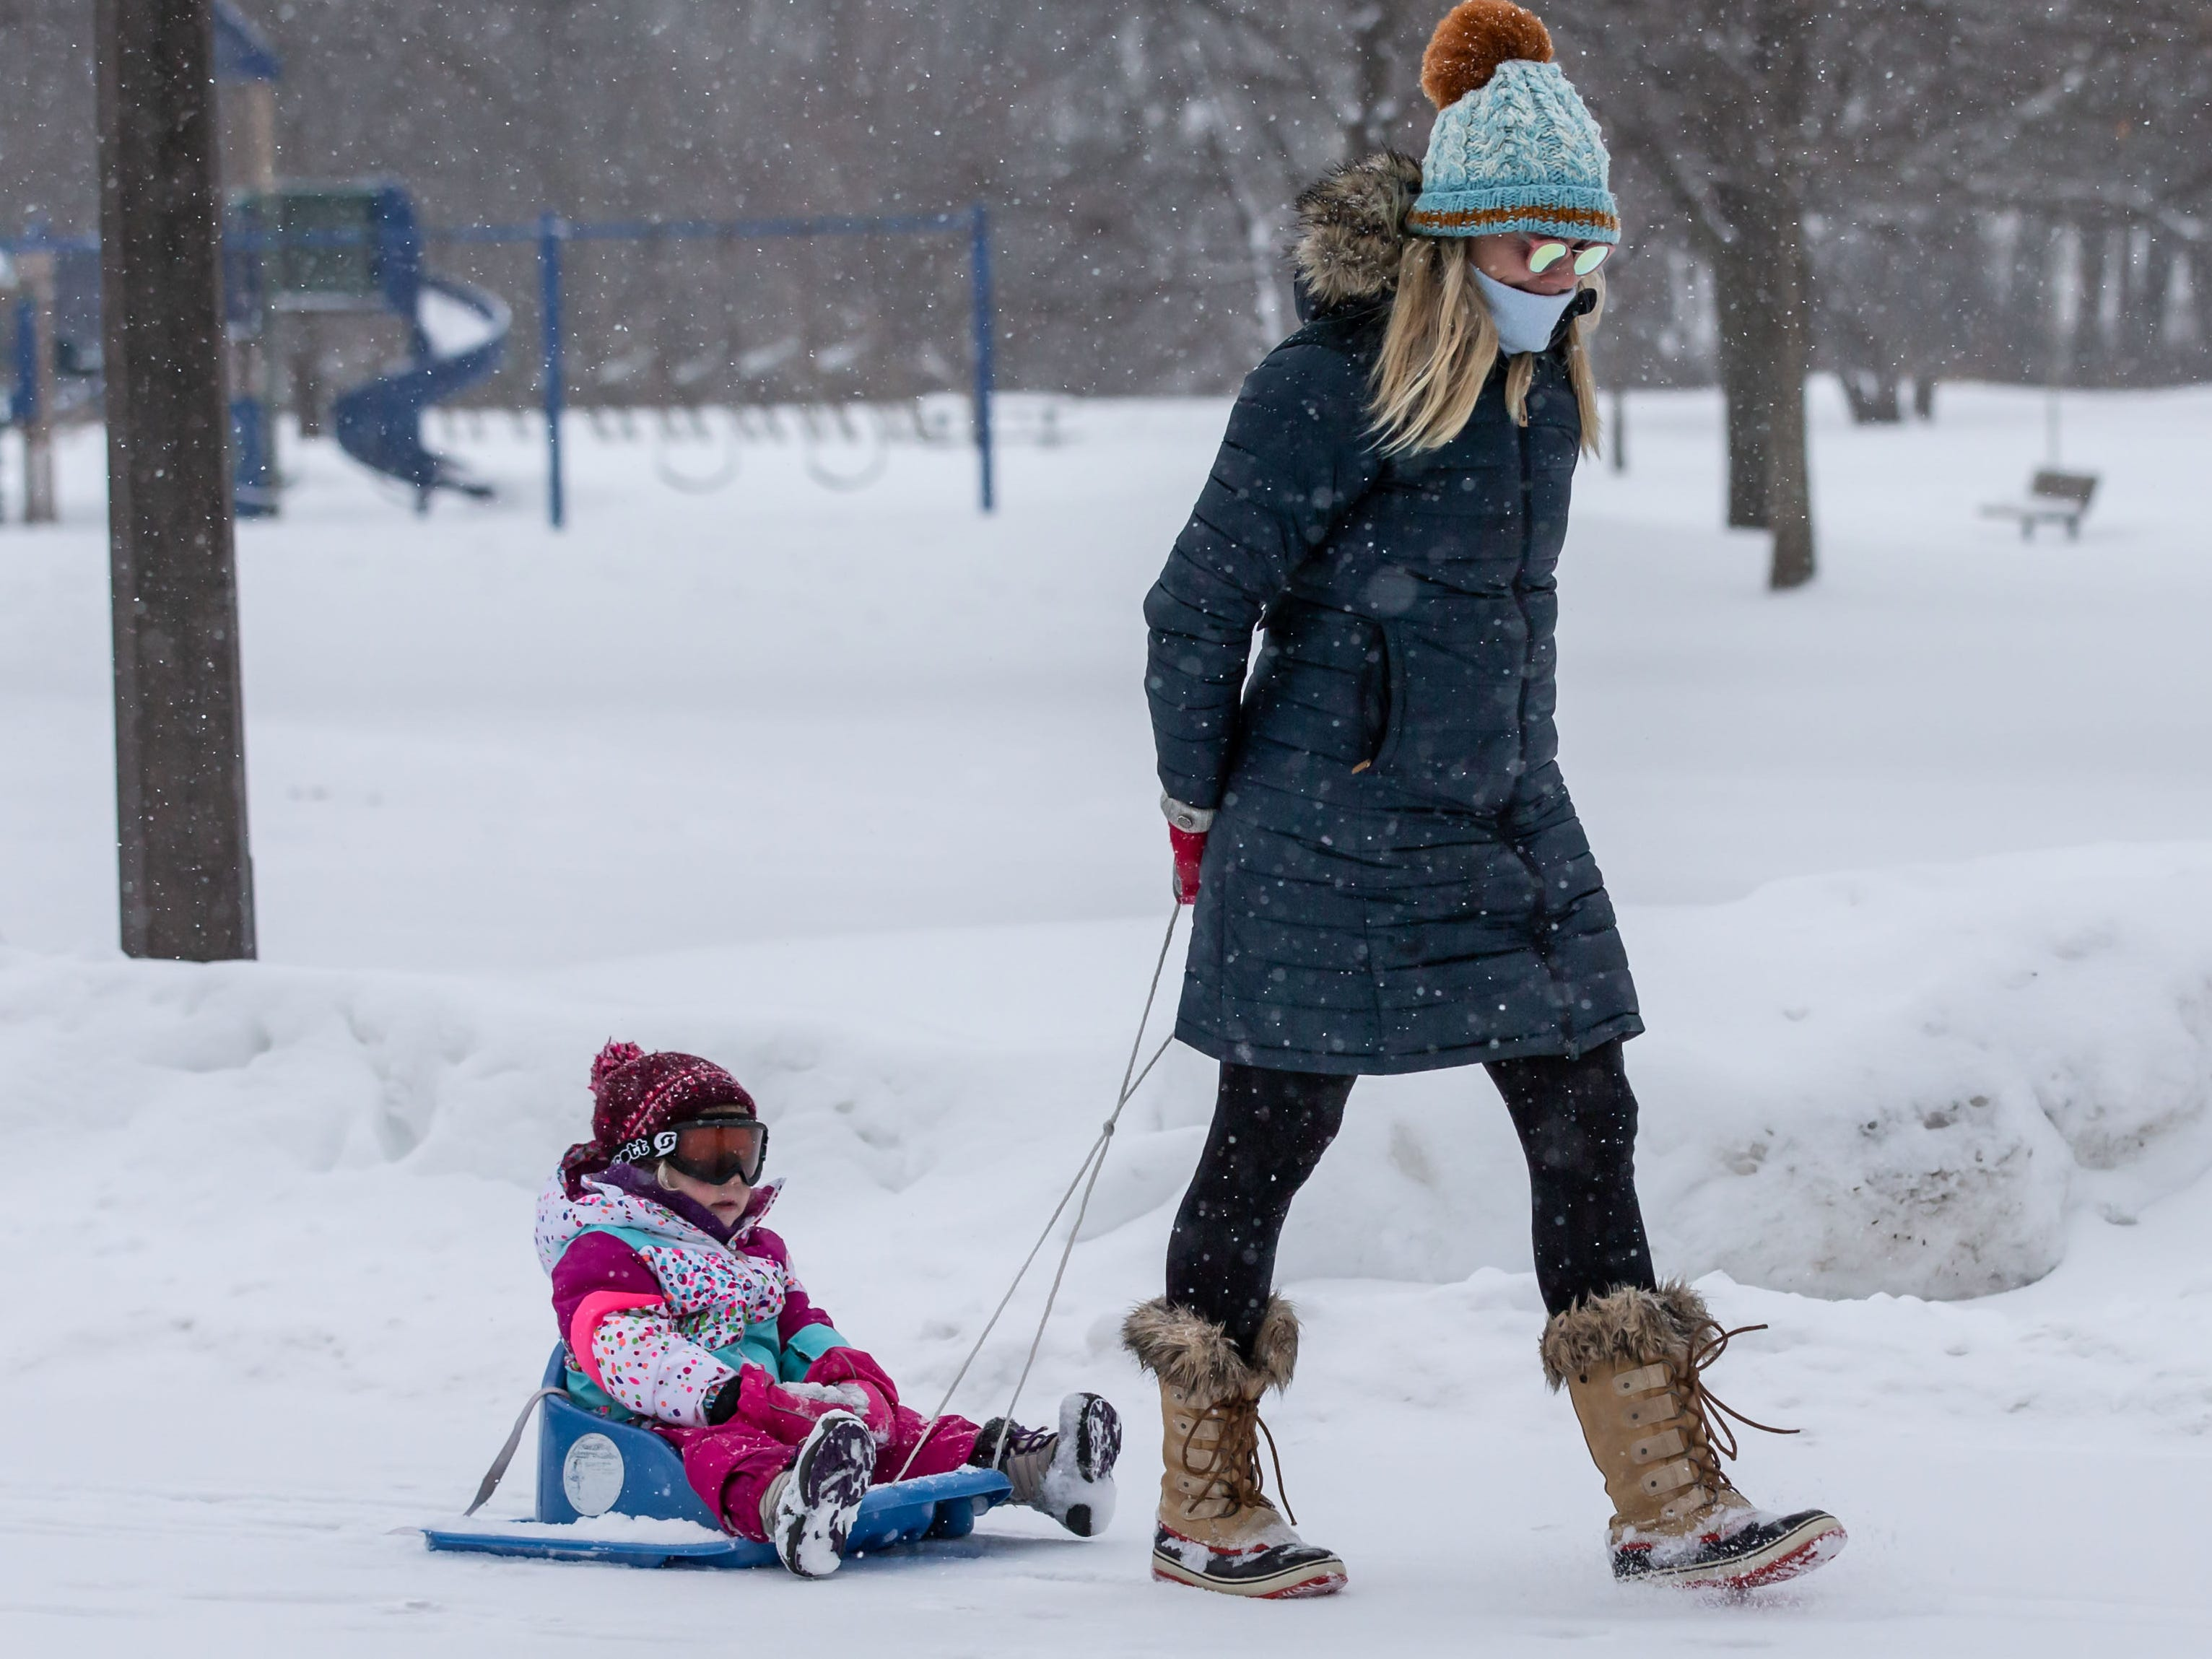 Brynn Dux of Wauwatosa and her 2-year-old daughter, Andi, enjoy a nature hike during the Winter Wonderland Family Event at Hoyt Park in Wauwatosa on Sunday. The free event featured guided nature hikes, winter-themed activities, crafts, movies, marshmallow toasting and more.